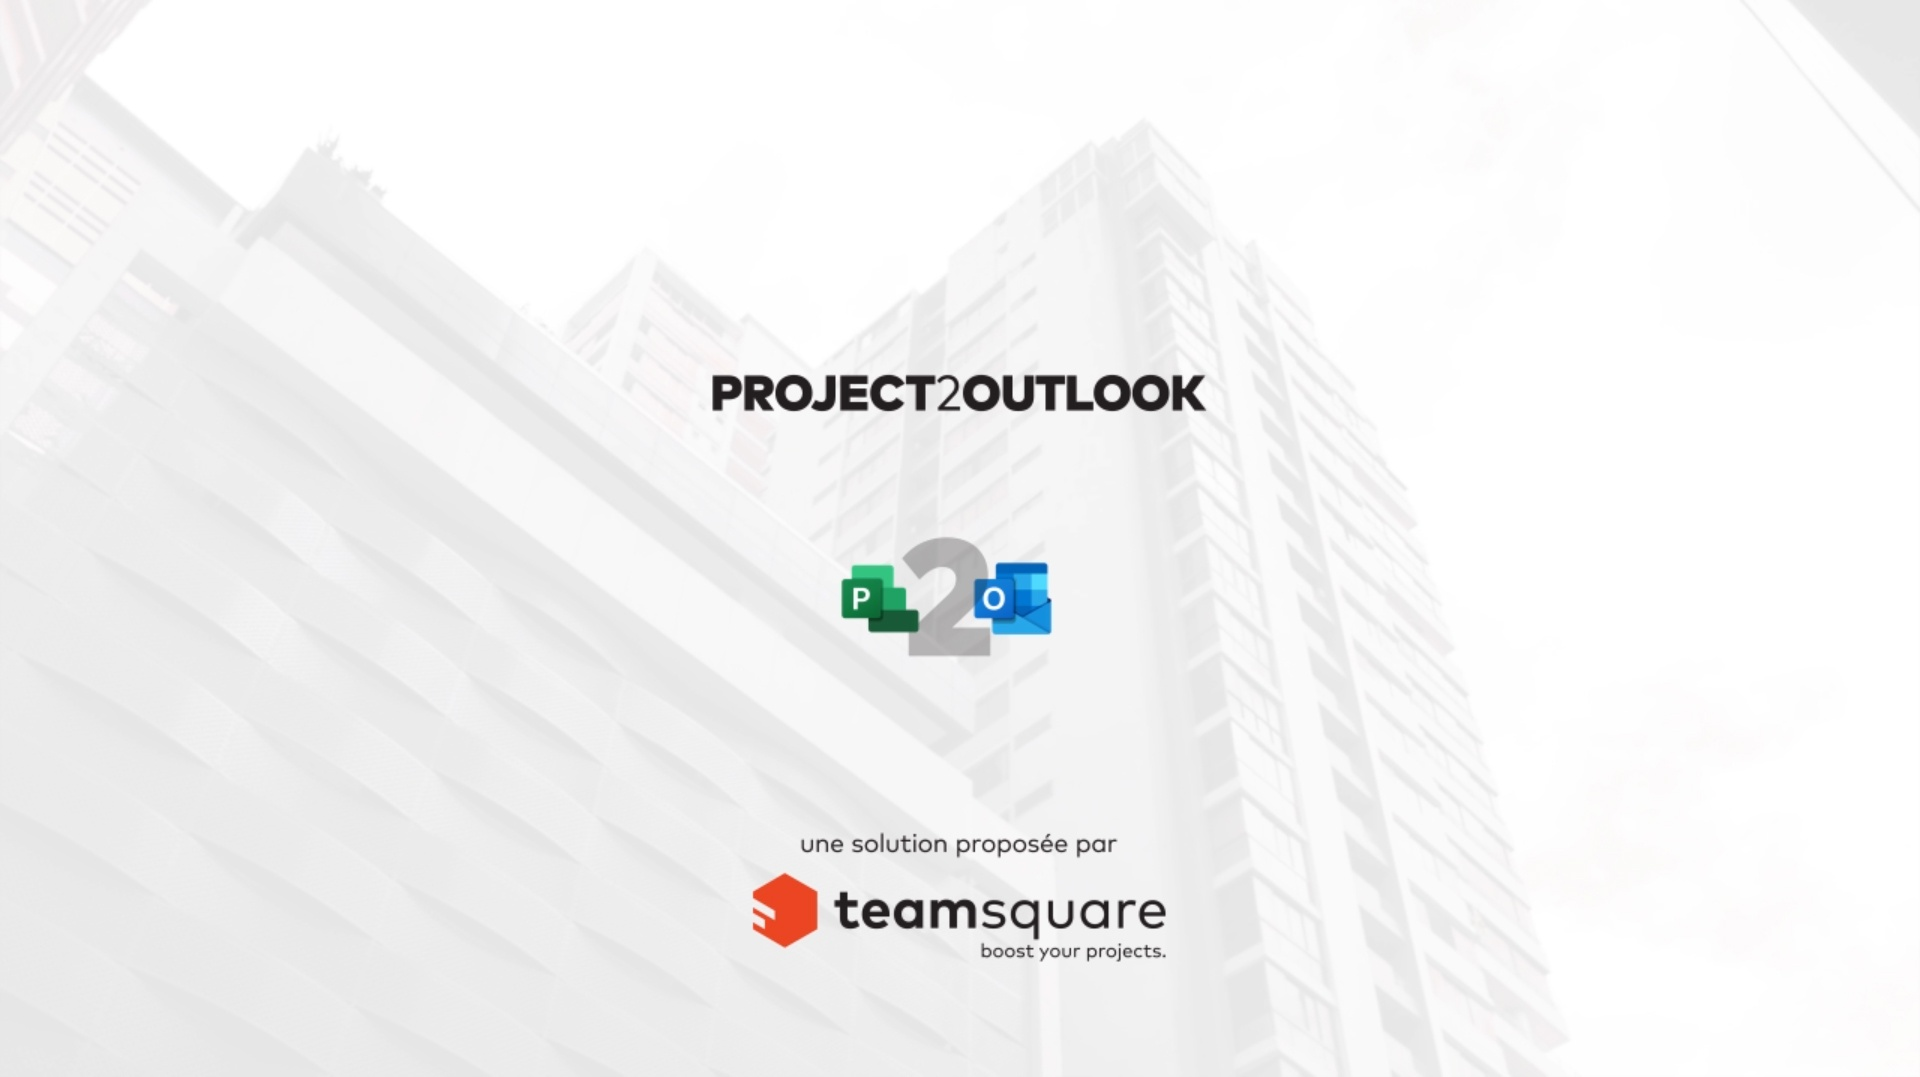 Project 2 Outlook